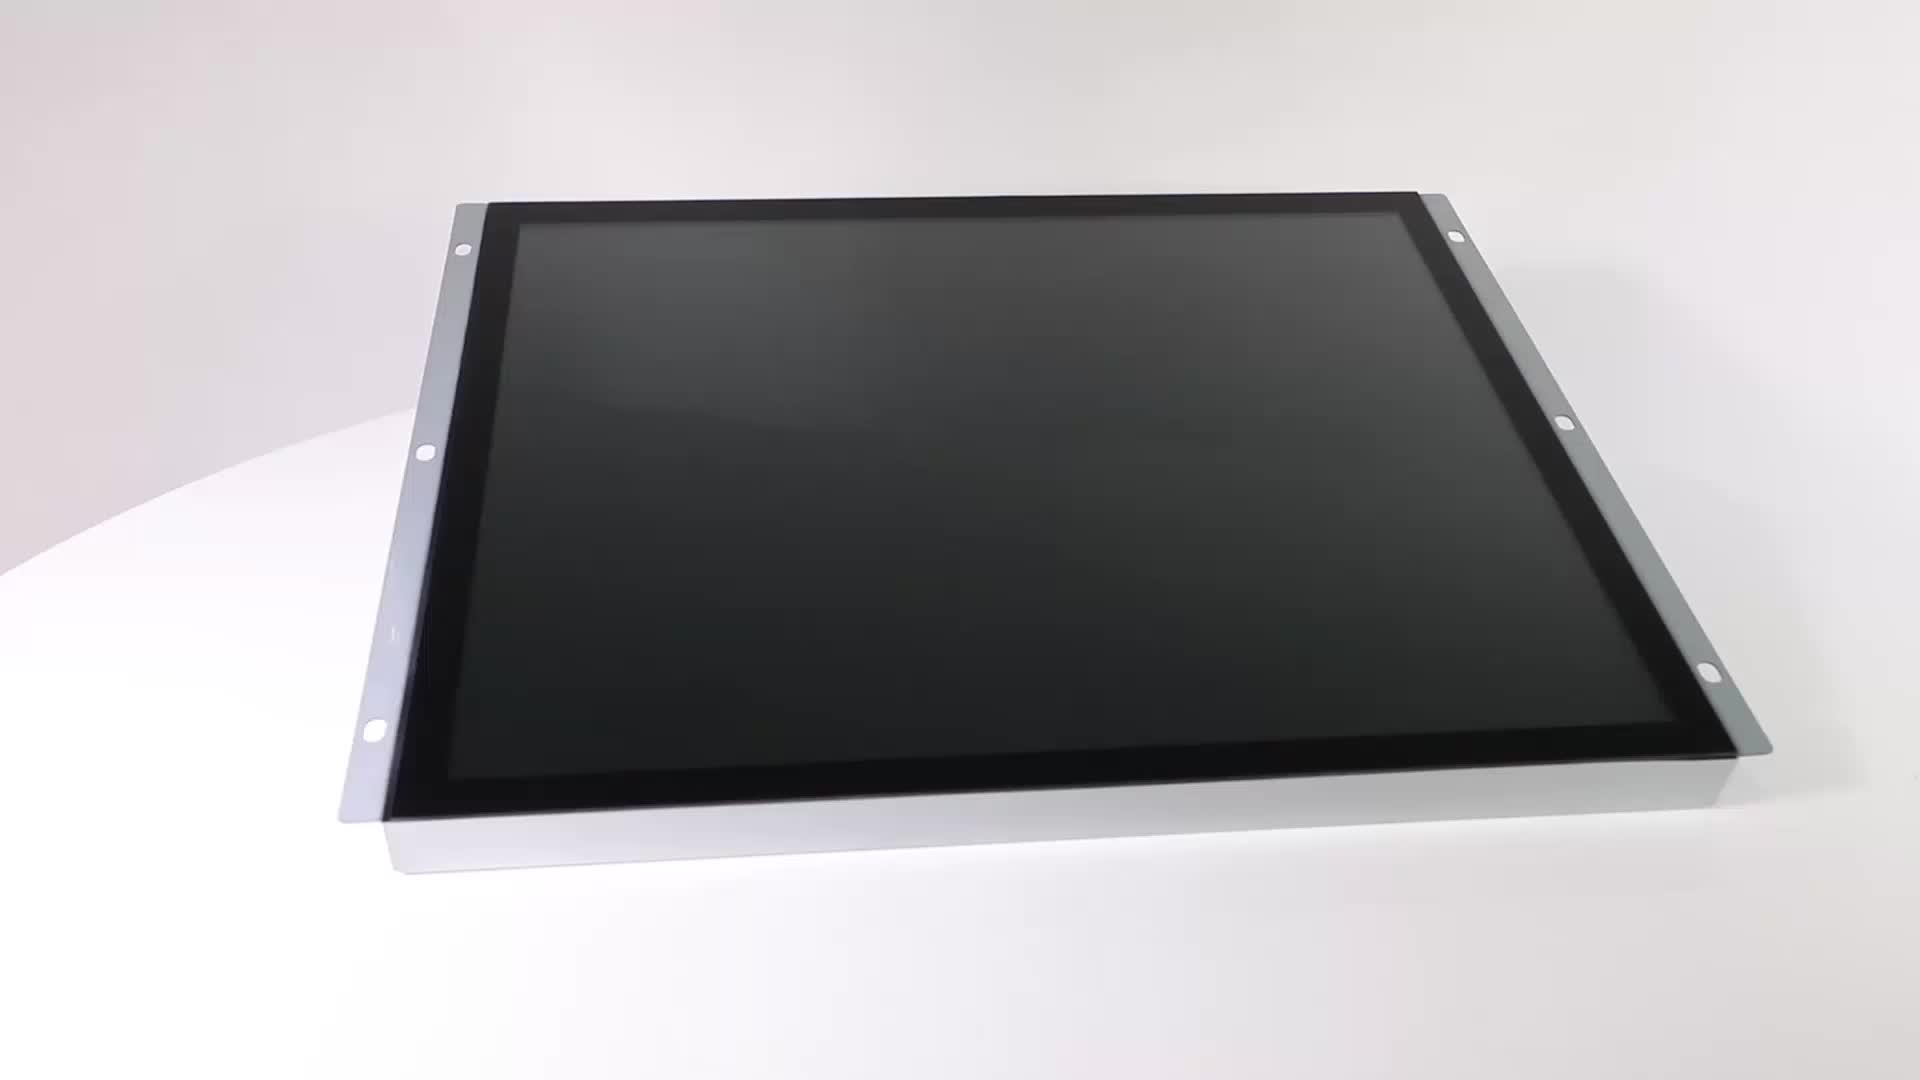 Polegadas touch screen display led interior tela de 15 encostos de cabeça monitor com usb